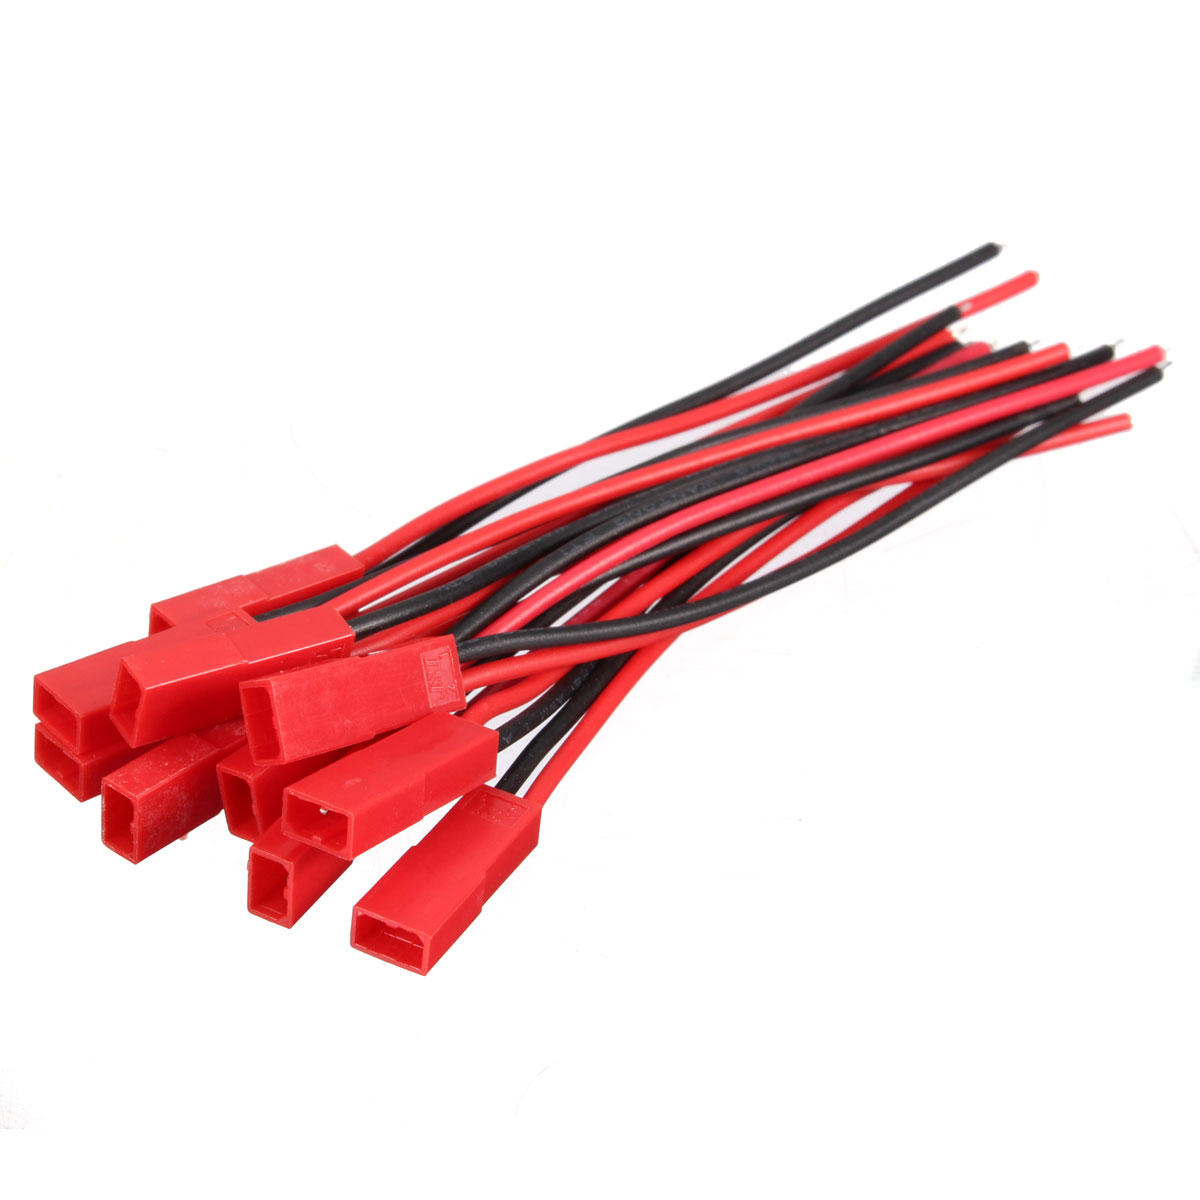 Excellway 20pcs 2 Pins JST Female Connector Plug Cable Wire Line 110mm 22AWG